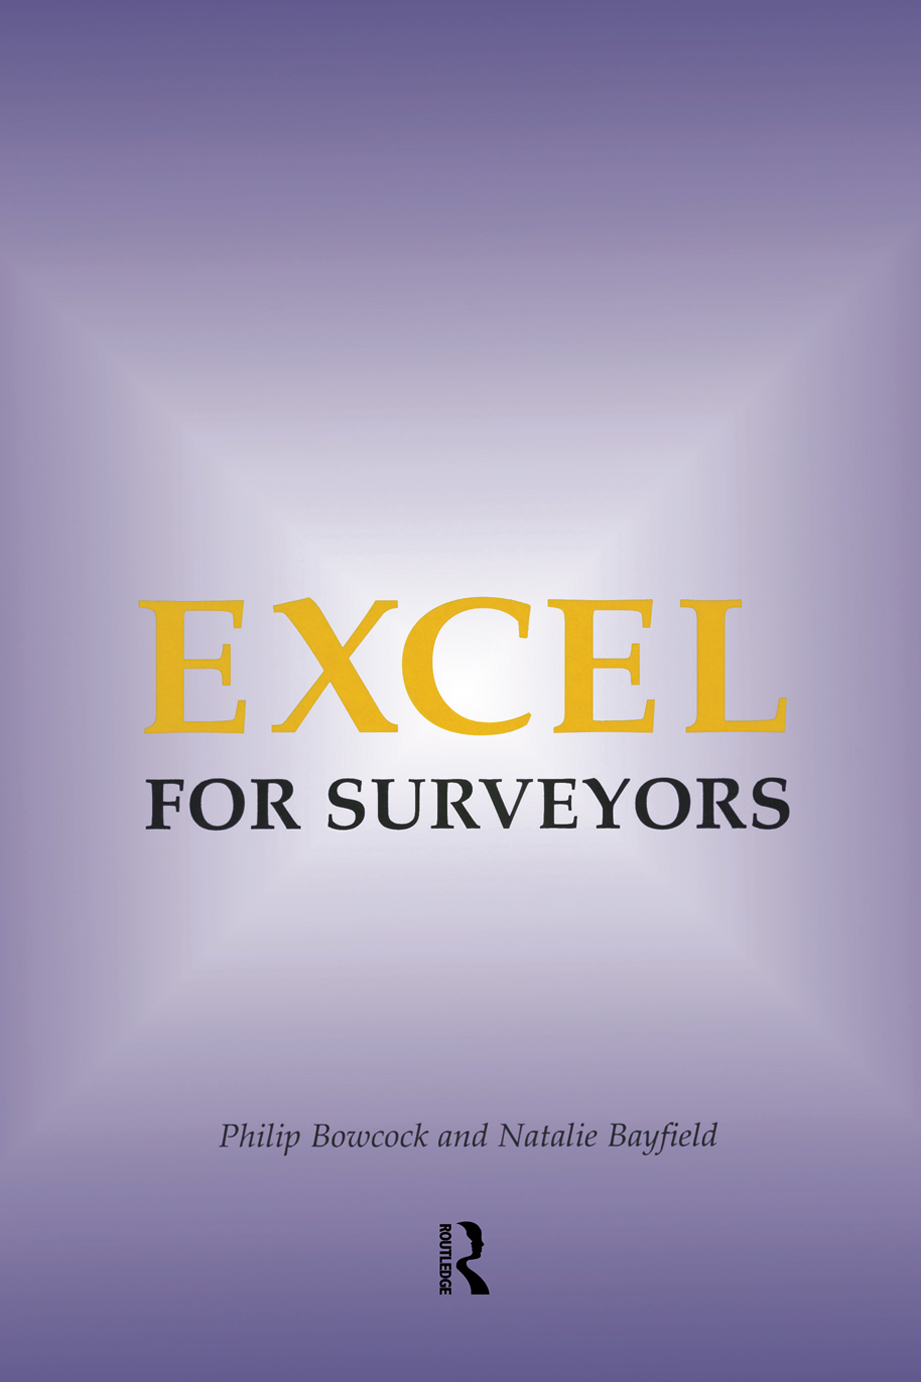 Excel for Surveyors